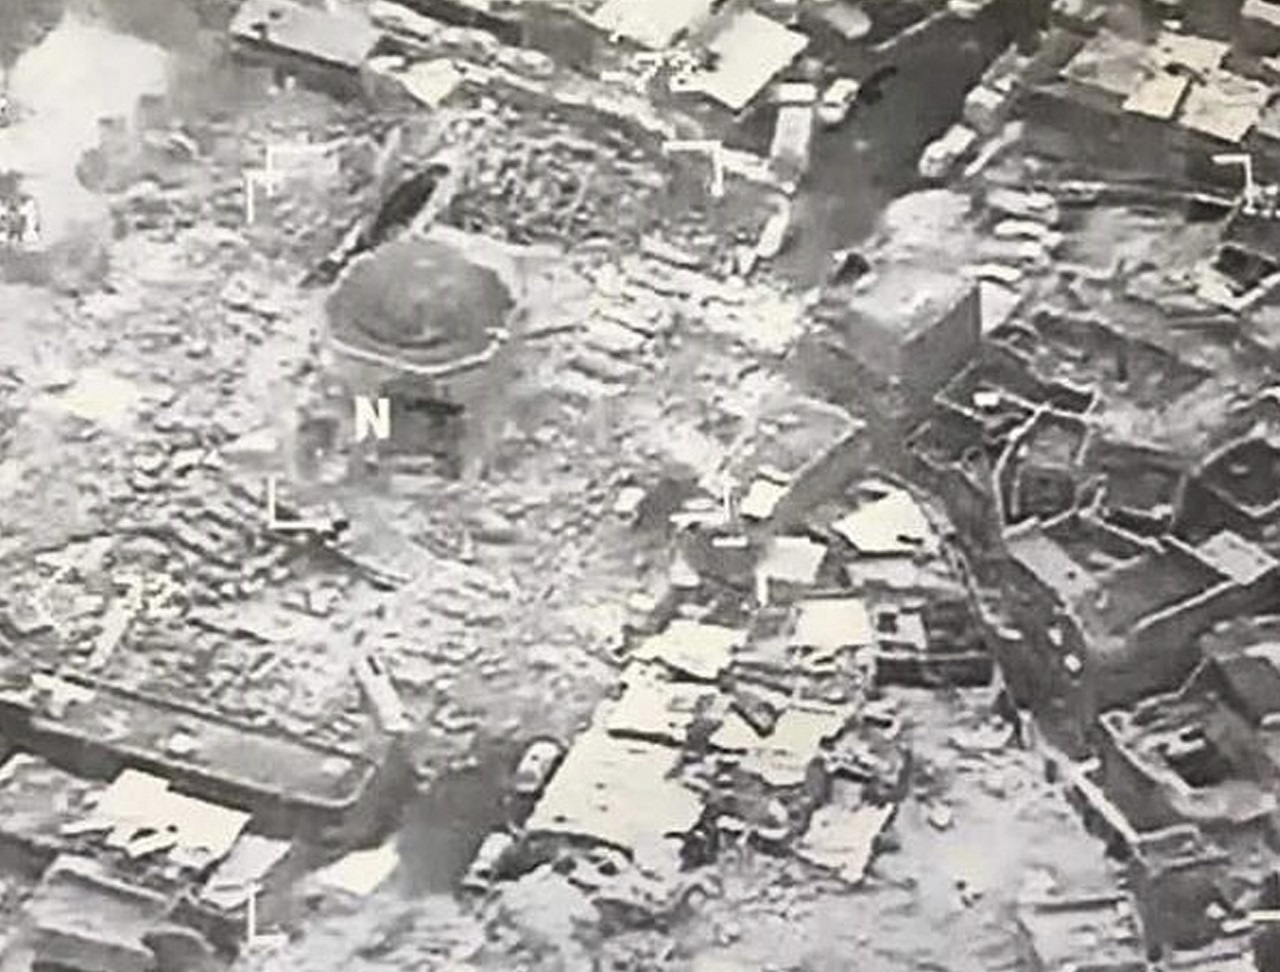 This image provided by U.S. CENTCOM shows al-Nuri mosque destroyed by the Islamic State group, in Mosul, Iraq, Wednesday, June 21, 2017.